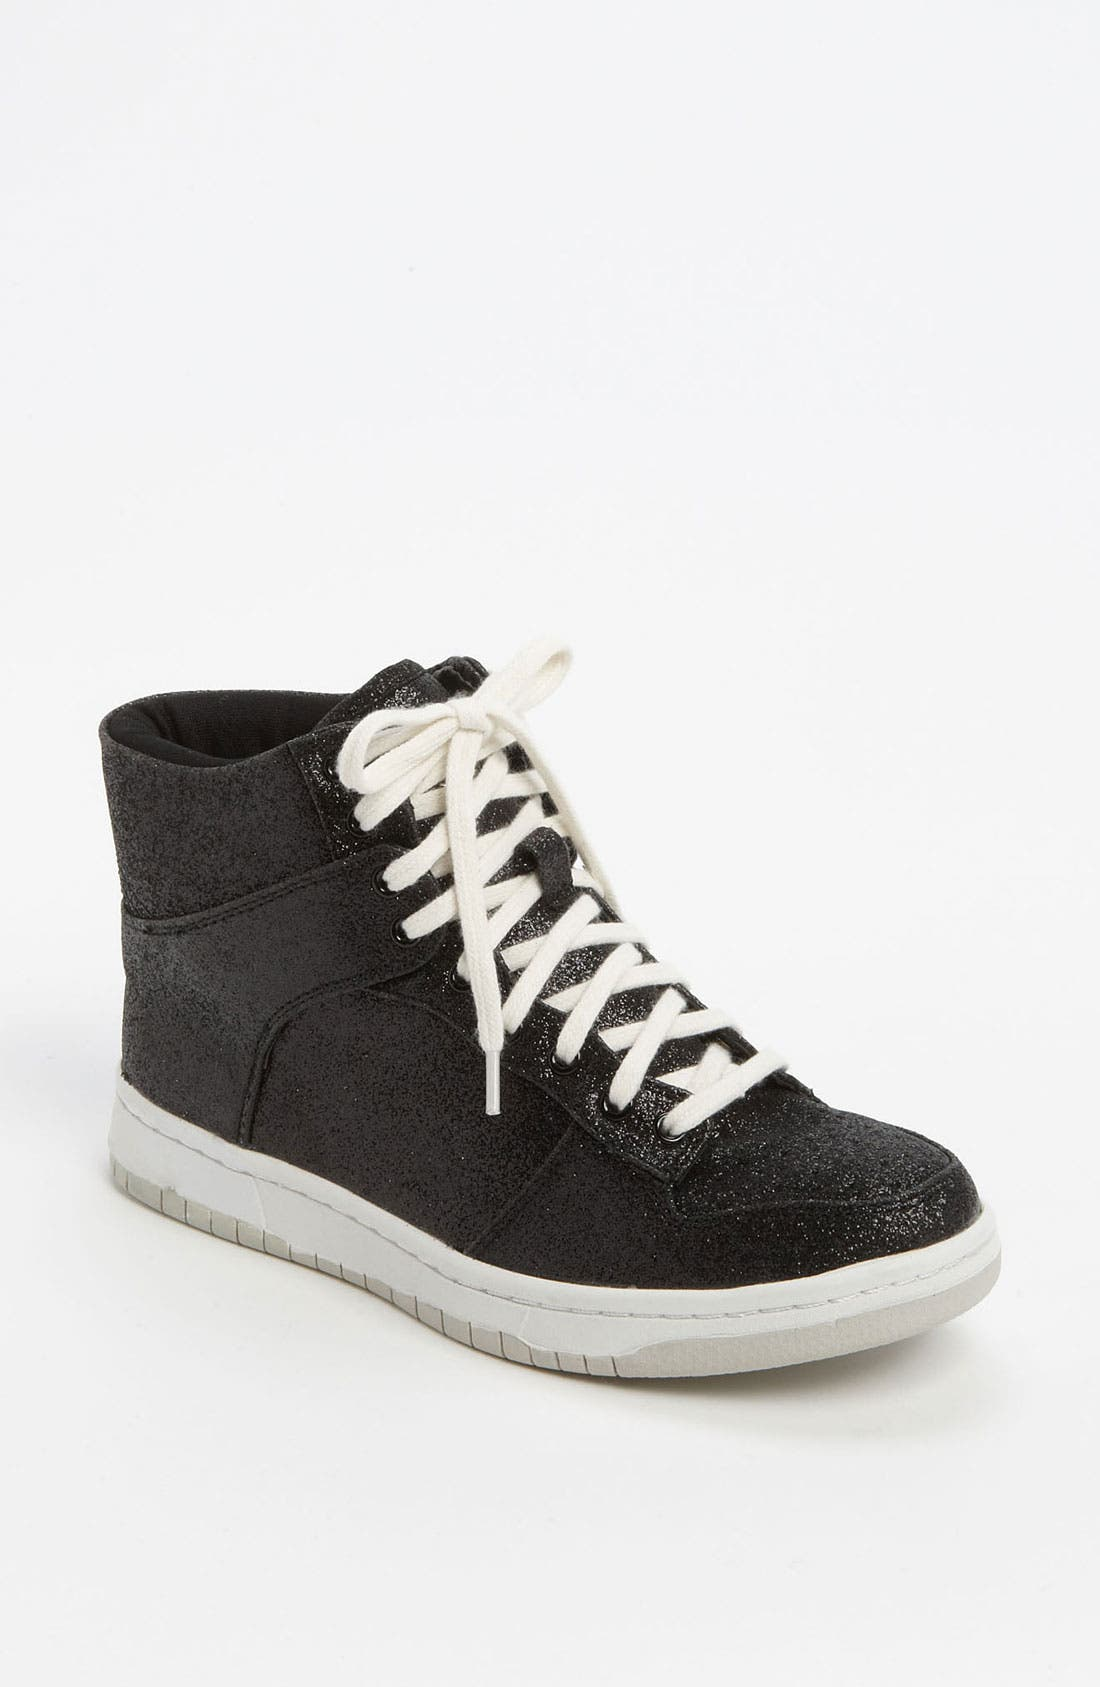 Alternate Image 1 Selected - Steve Madden 'Shufle' Sneaker